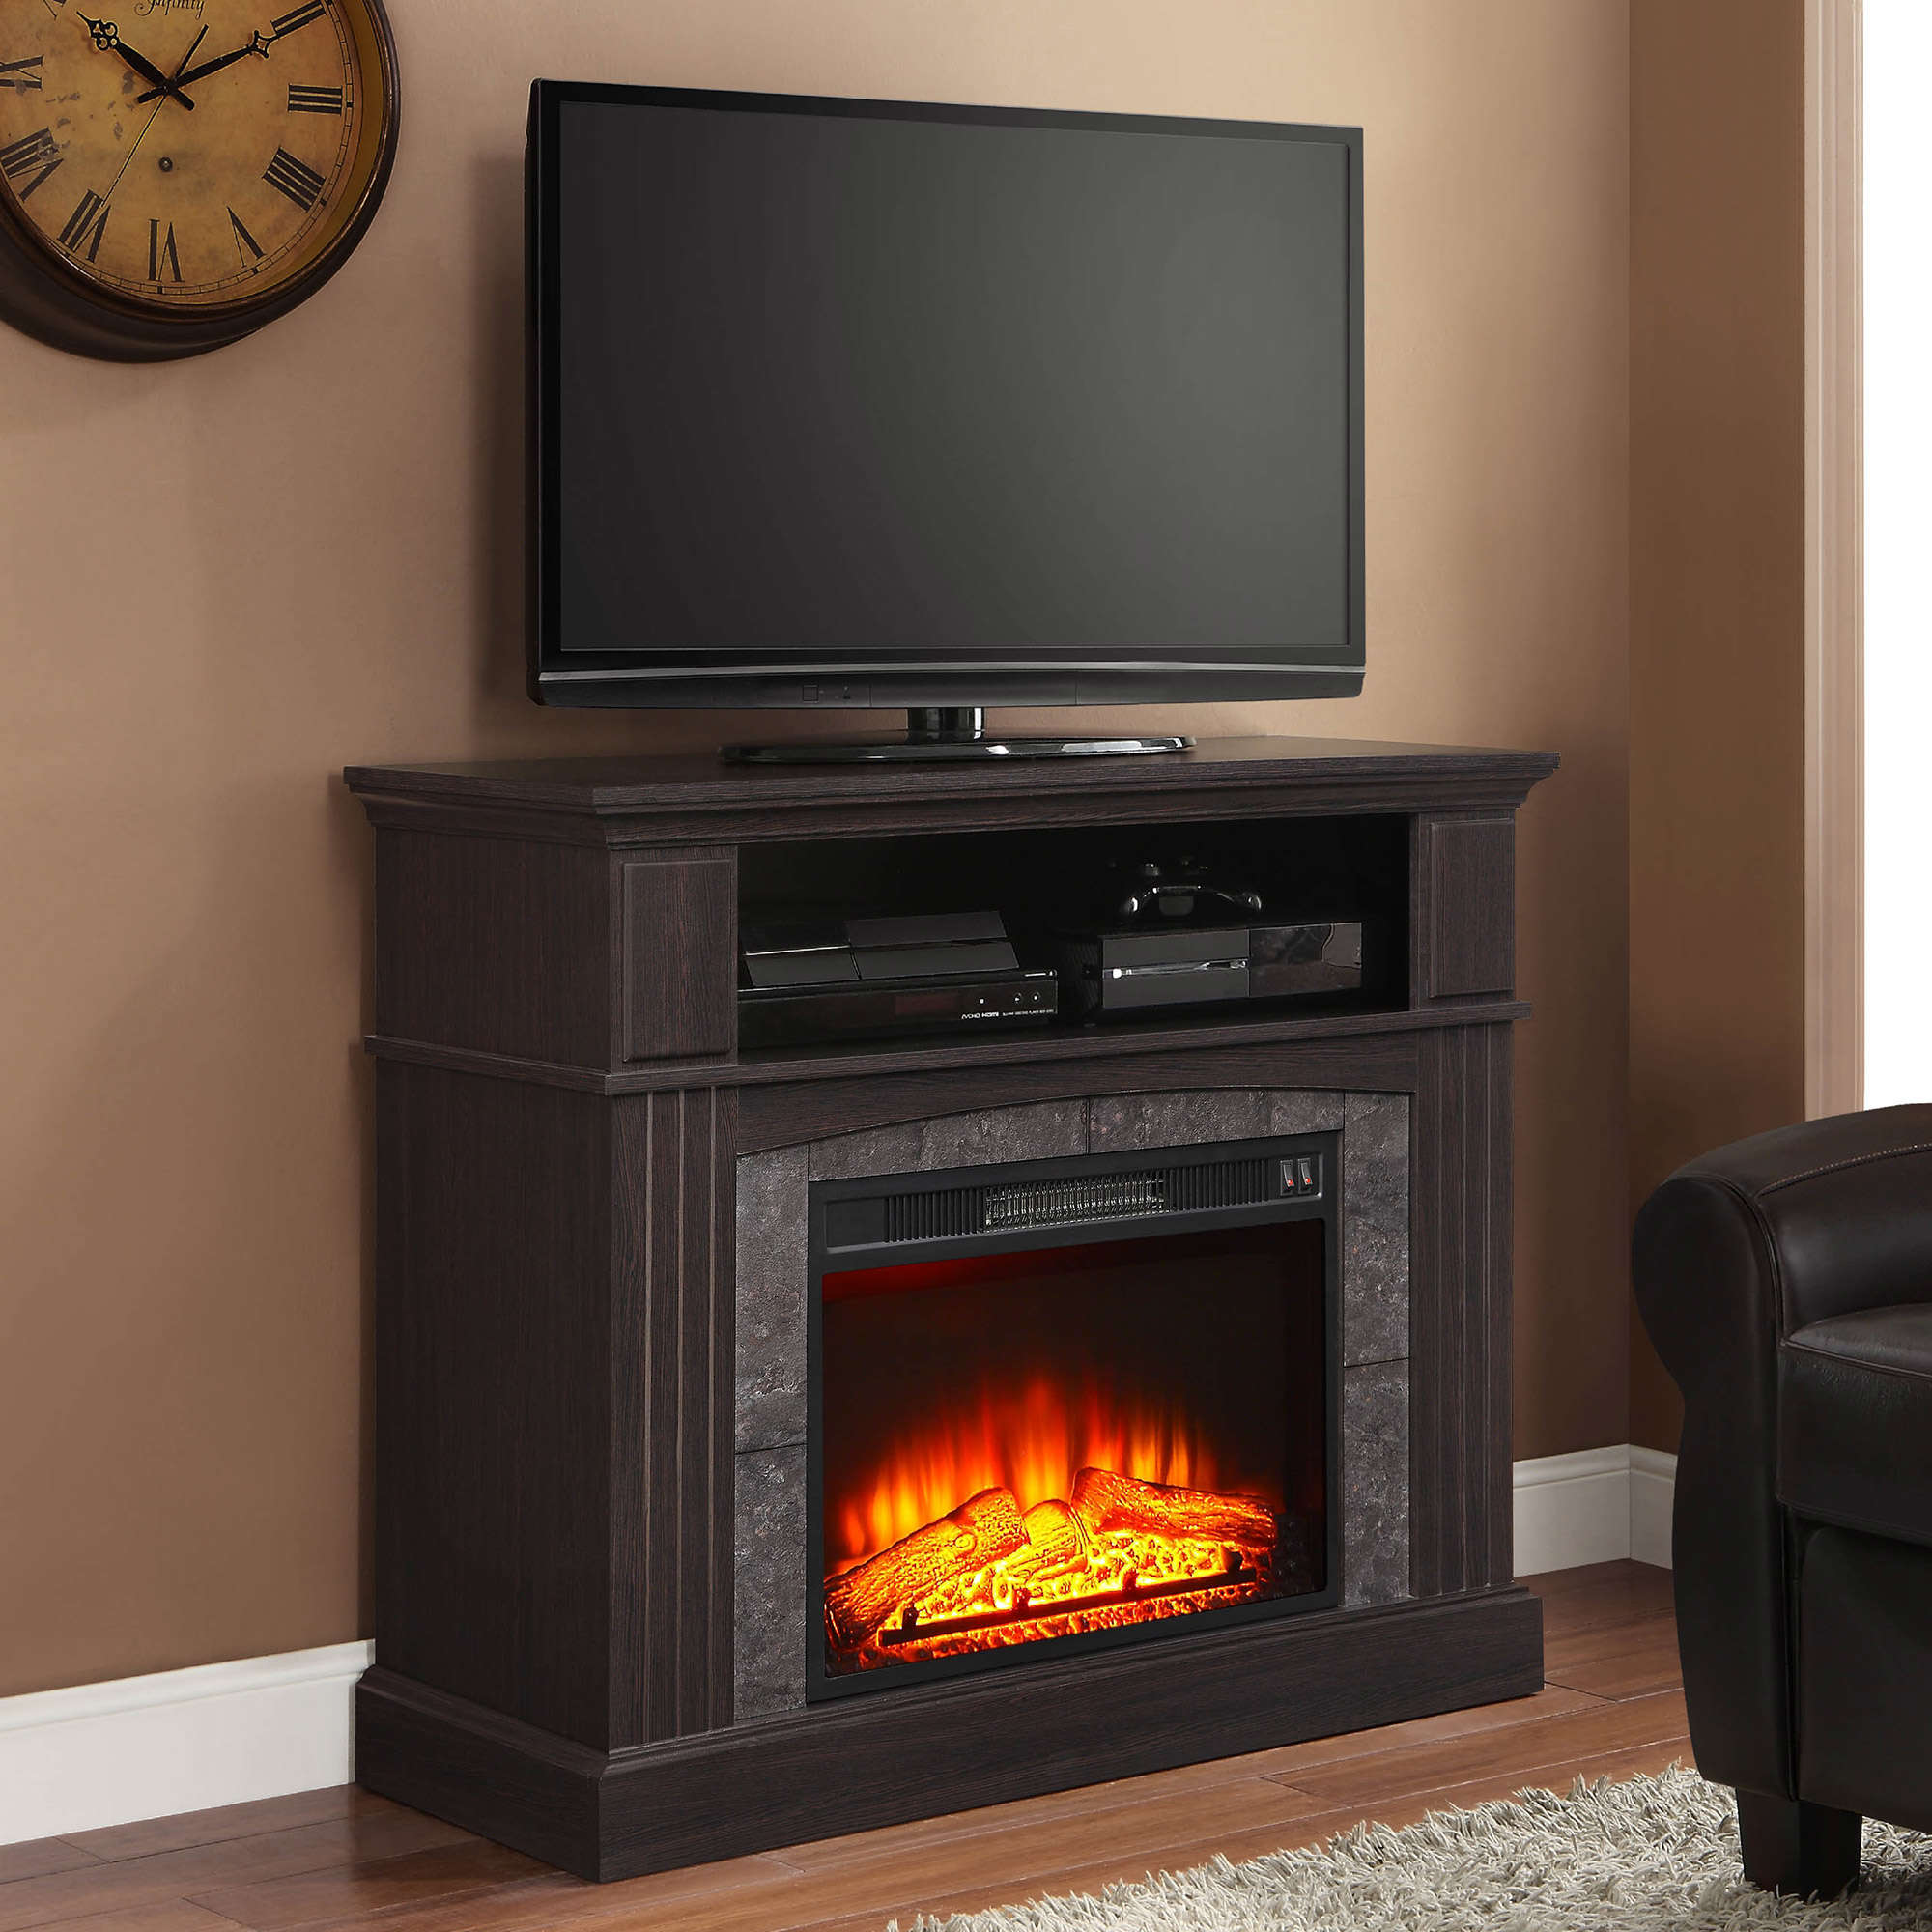 image of fireplace dvd walmart whats the best fireplace dvd